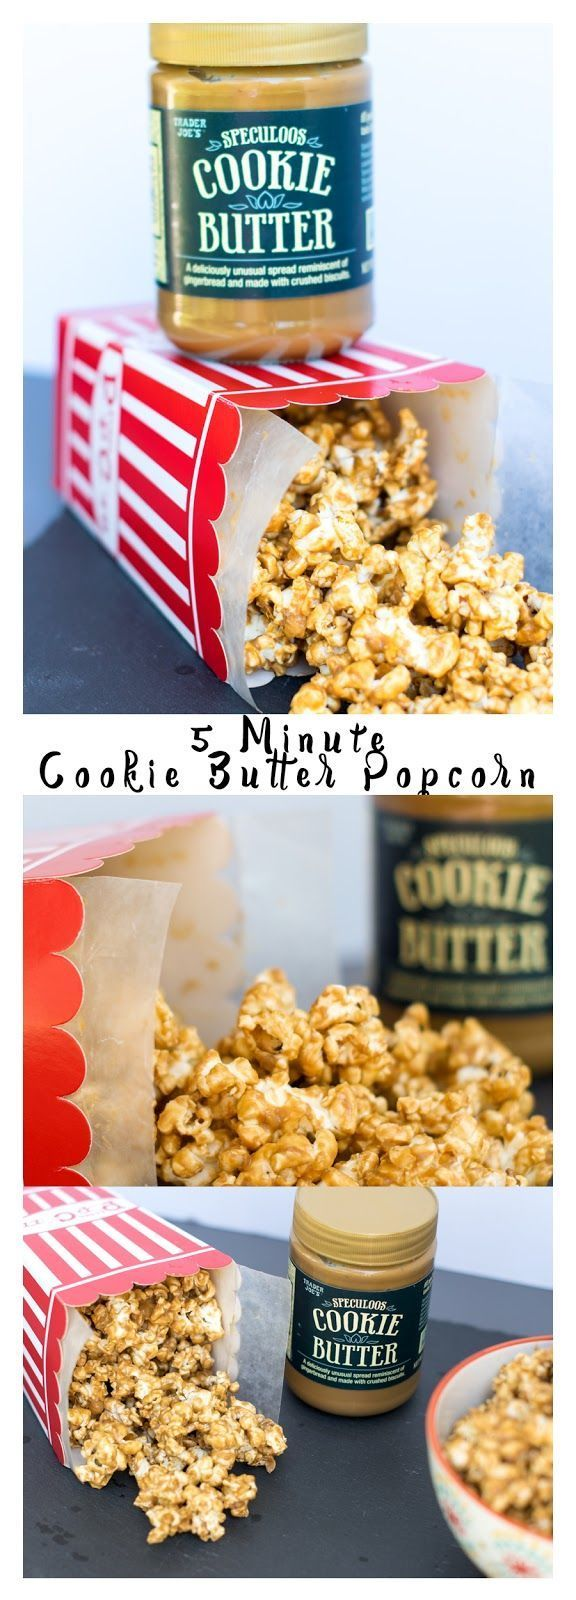 Amazing 5 minute Cookie Butter Popcorn Recipe! Your friends will think it's a gourmet recipe. Features Speculoos Cookie Butter from Trader Joe's.